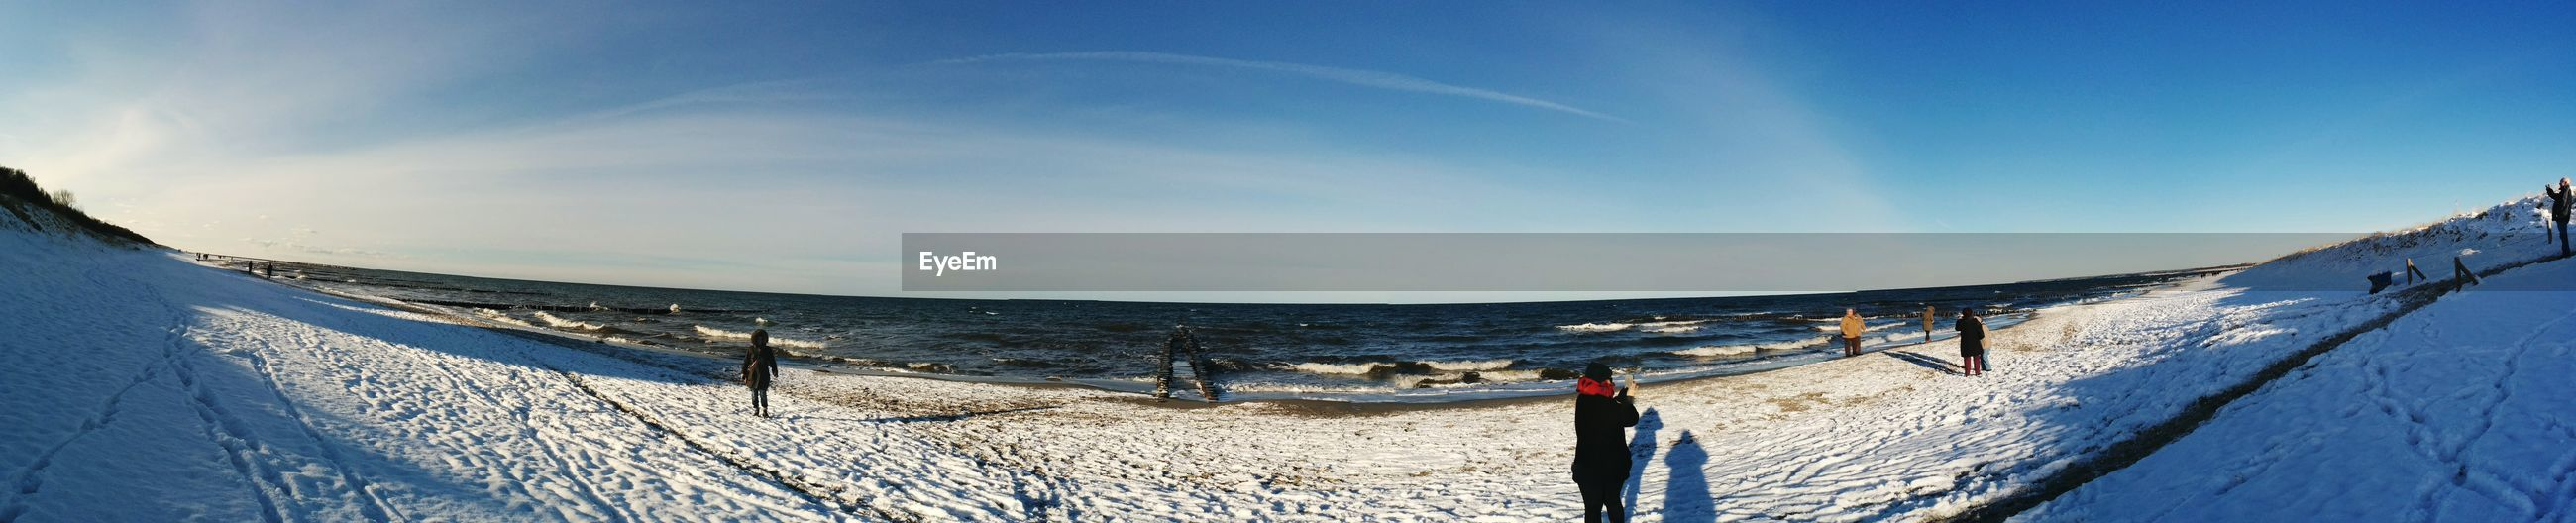 Panoramic view of sea against sky during winter